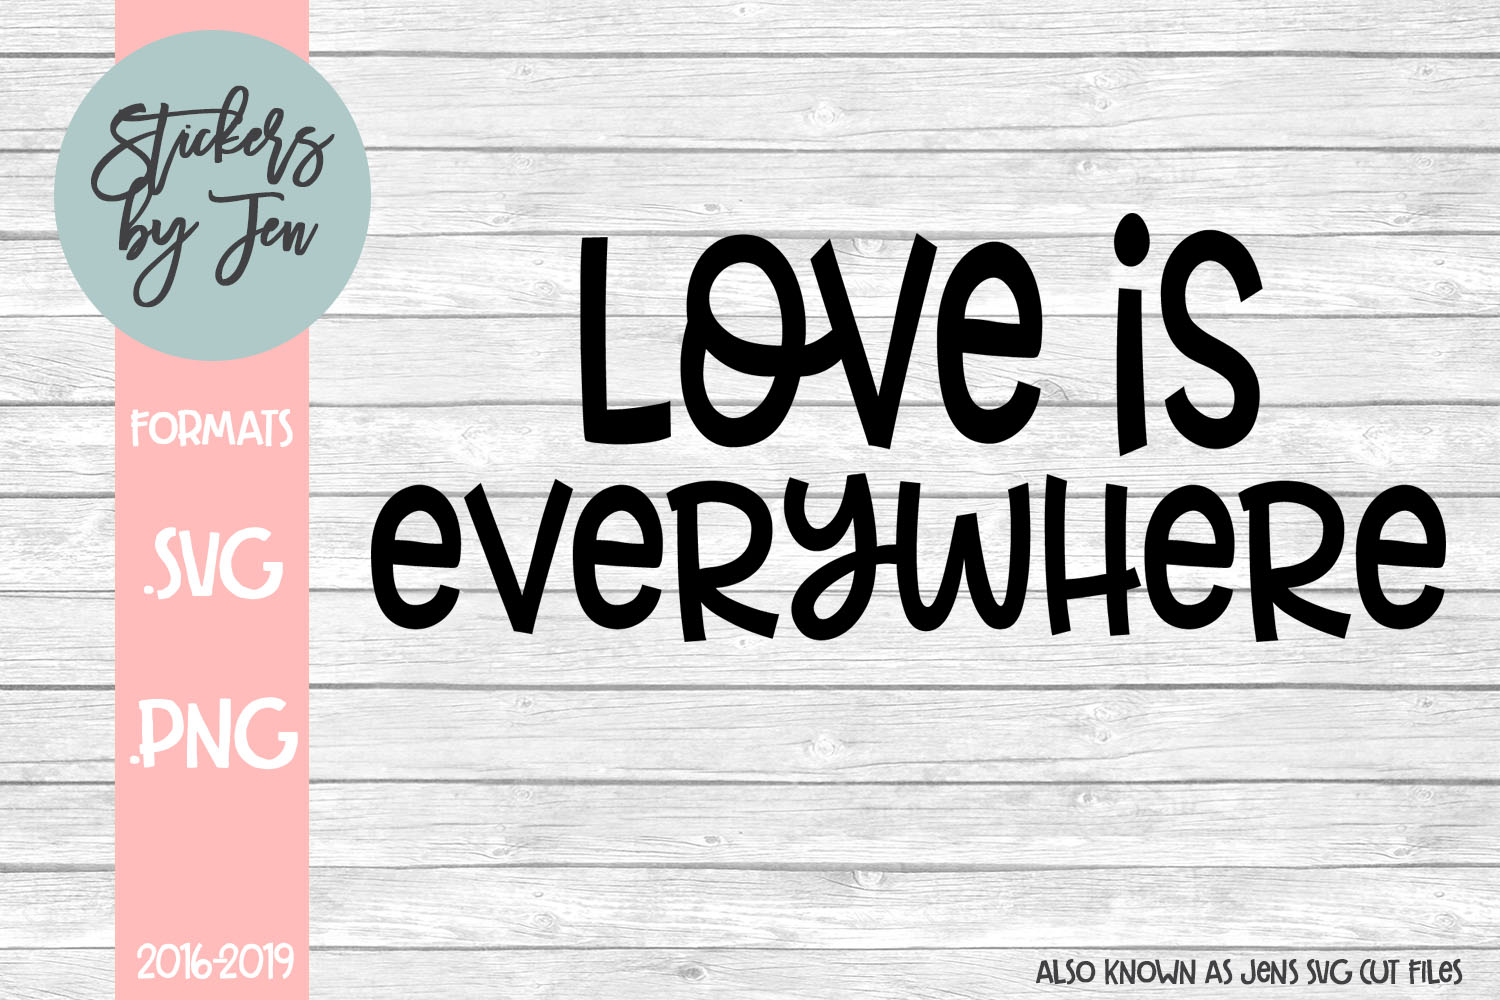 Download Free Love Is Everywhere Svg Graphic By Stickers By Jennifer for Cricut Explore, Silhouette and other cutting machines.